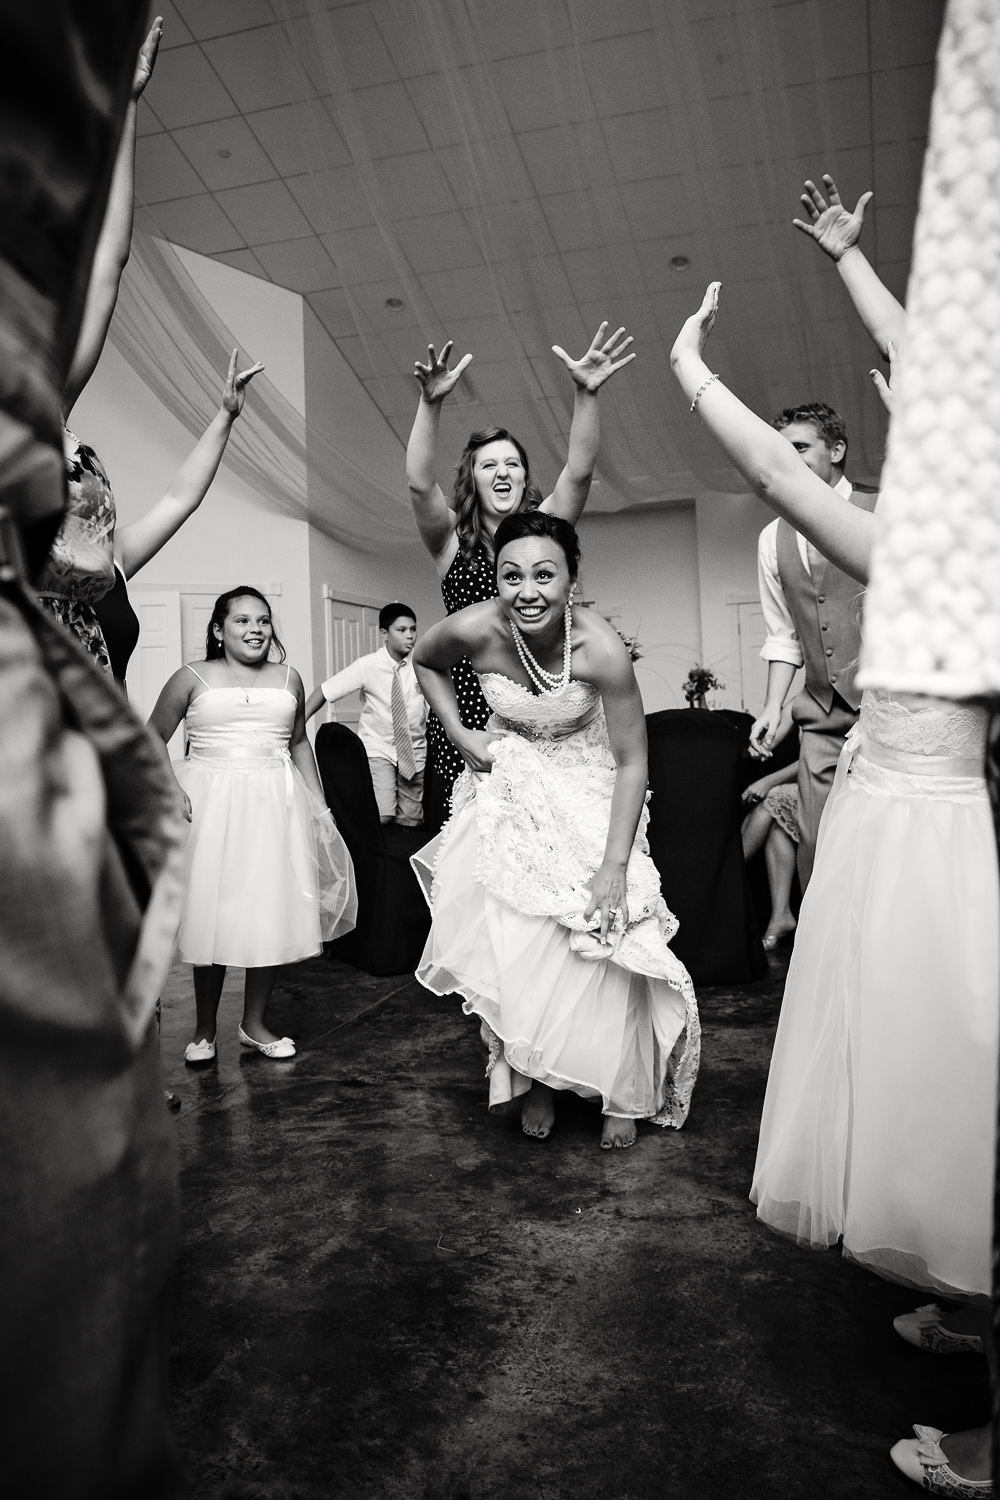 billings-montana-chanceys-wedding-reception-bride-dances-with-friends.jpg